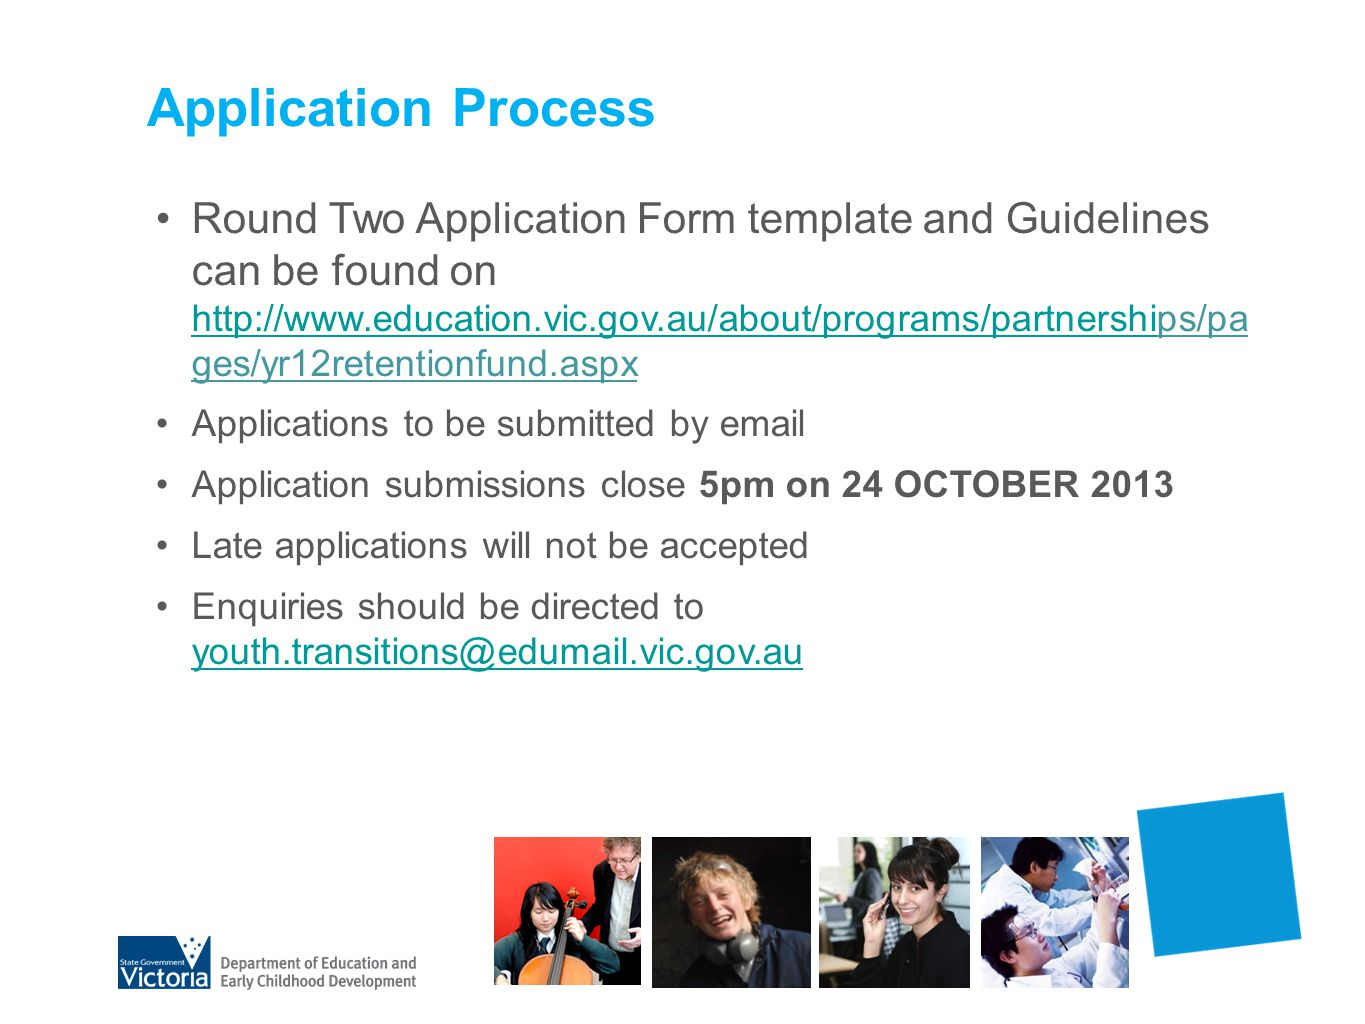 Application Process Round Two Application Form template and Guidelines can be found on http://www.education.vic.gov.au/about/programs/partnerships/pa